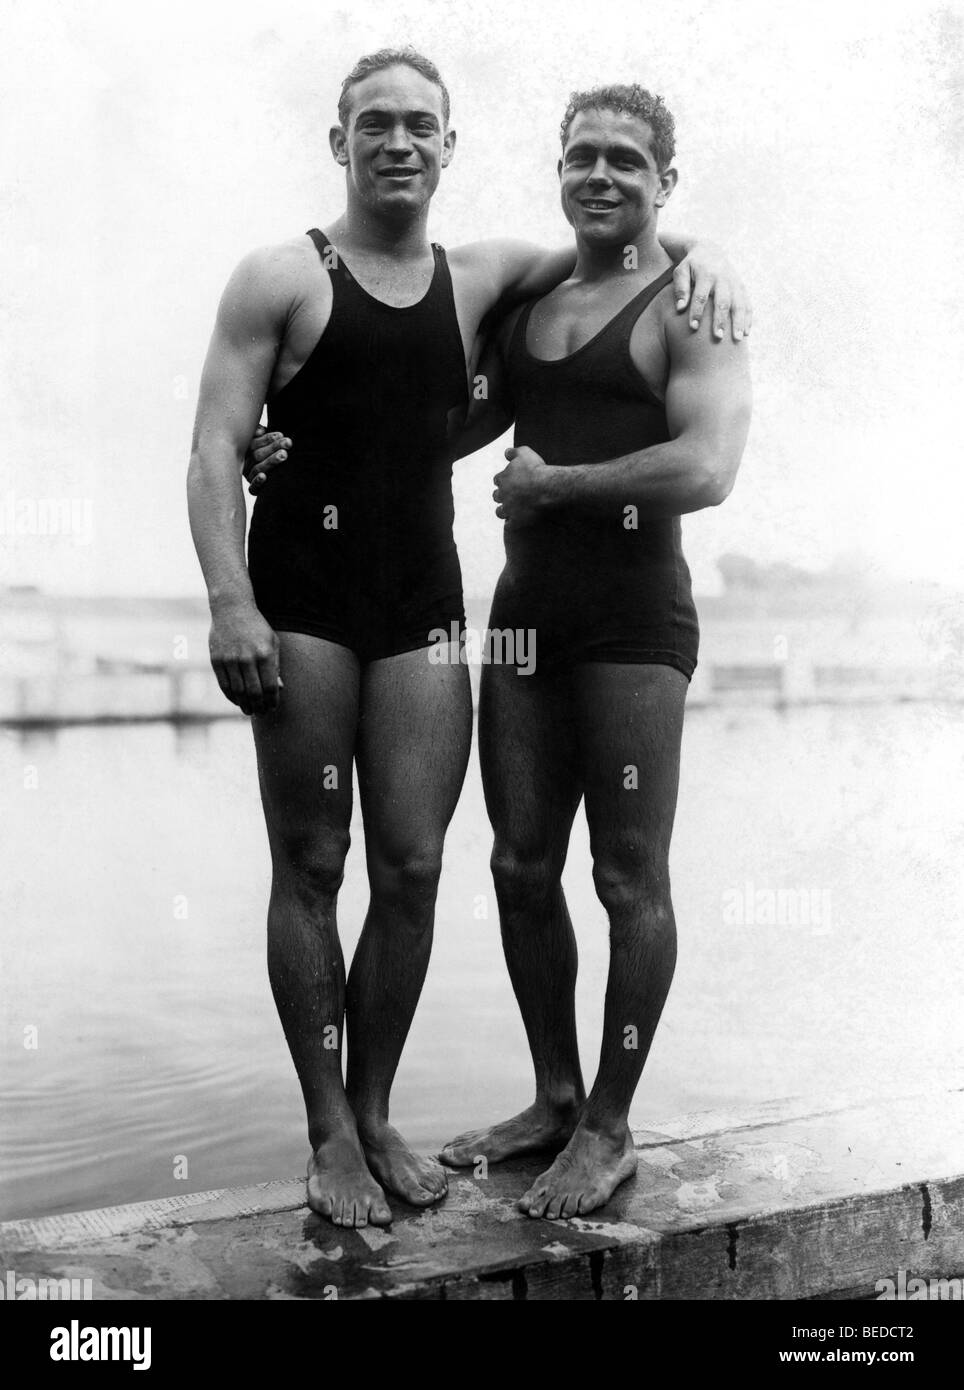 Historic photograph, aquatic athletes, around 1932 - Stock Image